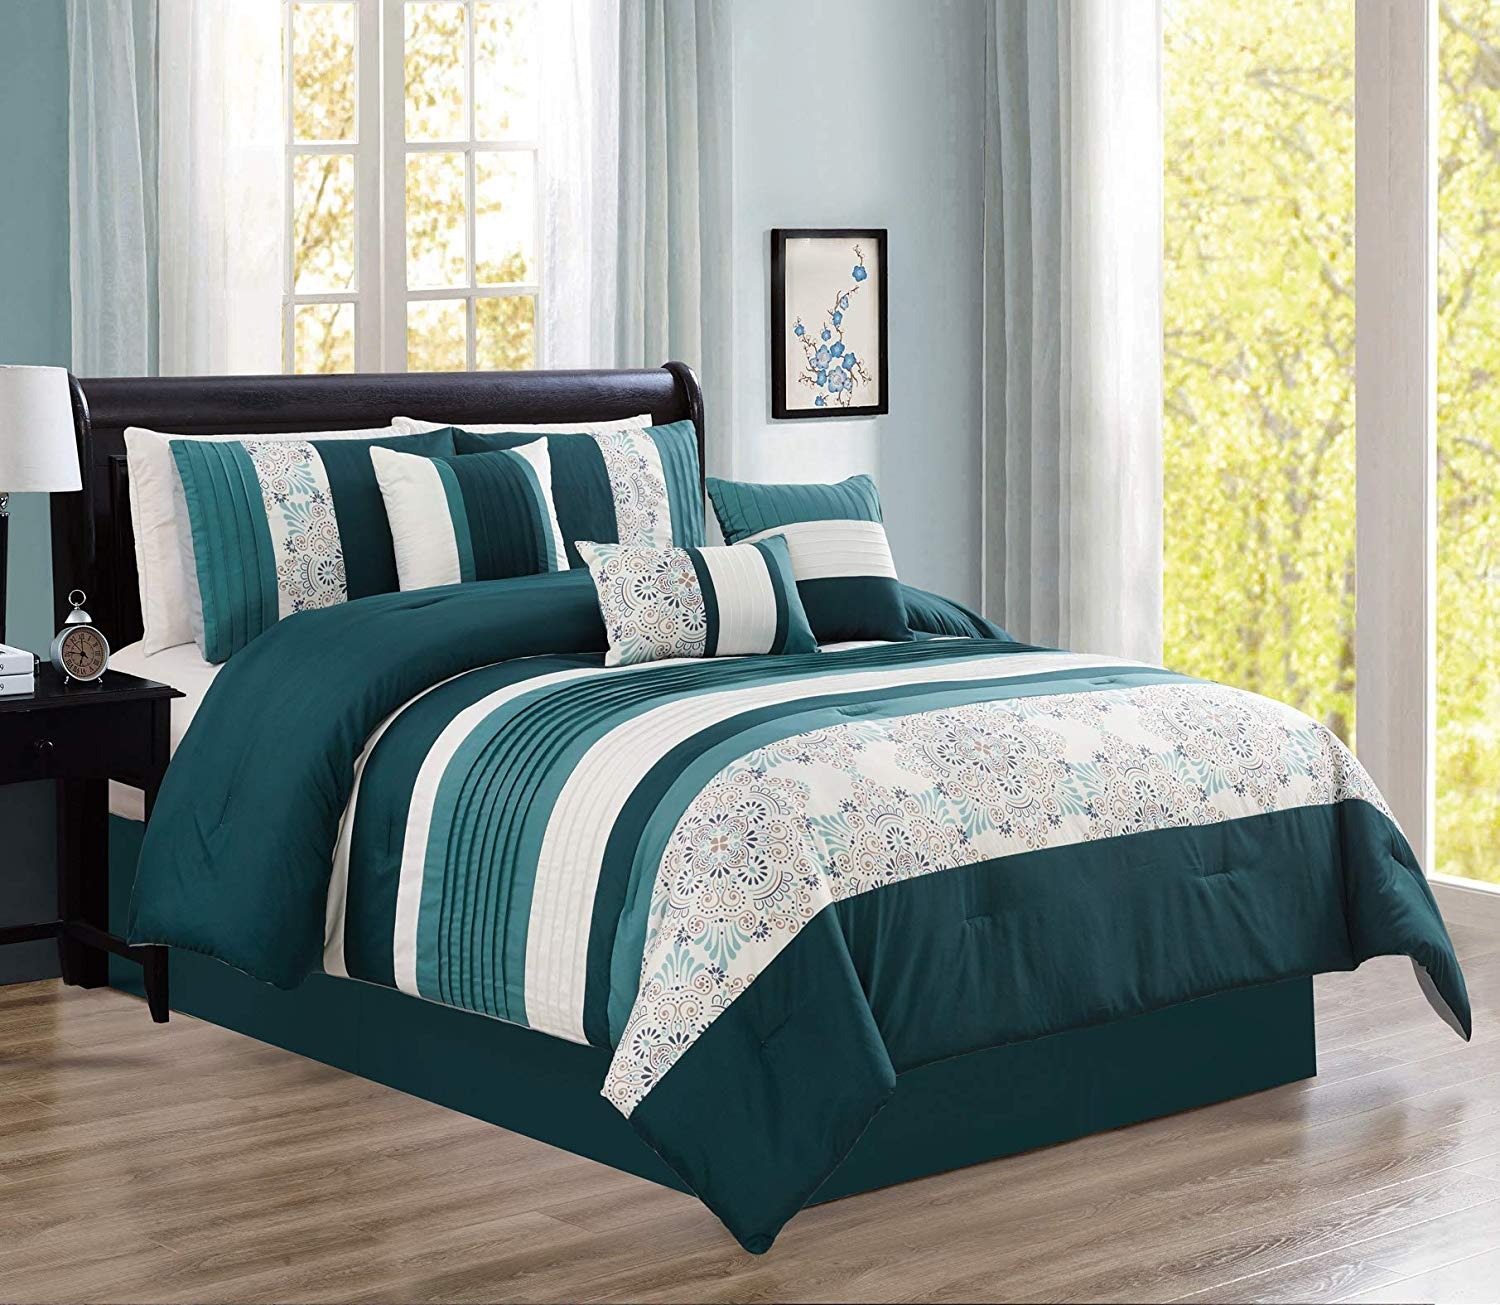 hgmart bedding comforter set bed in a bag 7 piece modern microfiber bedding sets oversized bedroom comforters with accent pillows cal king size